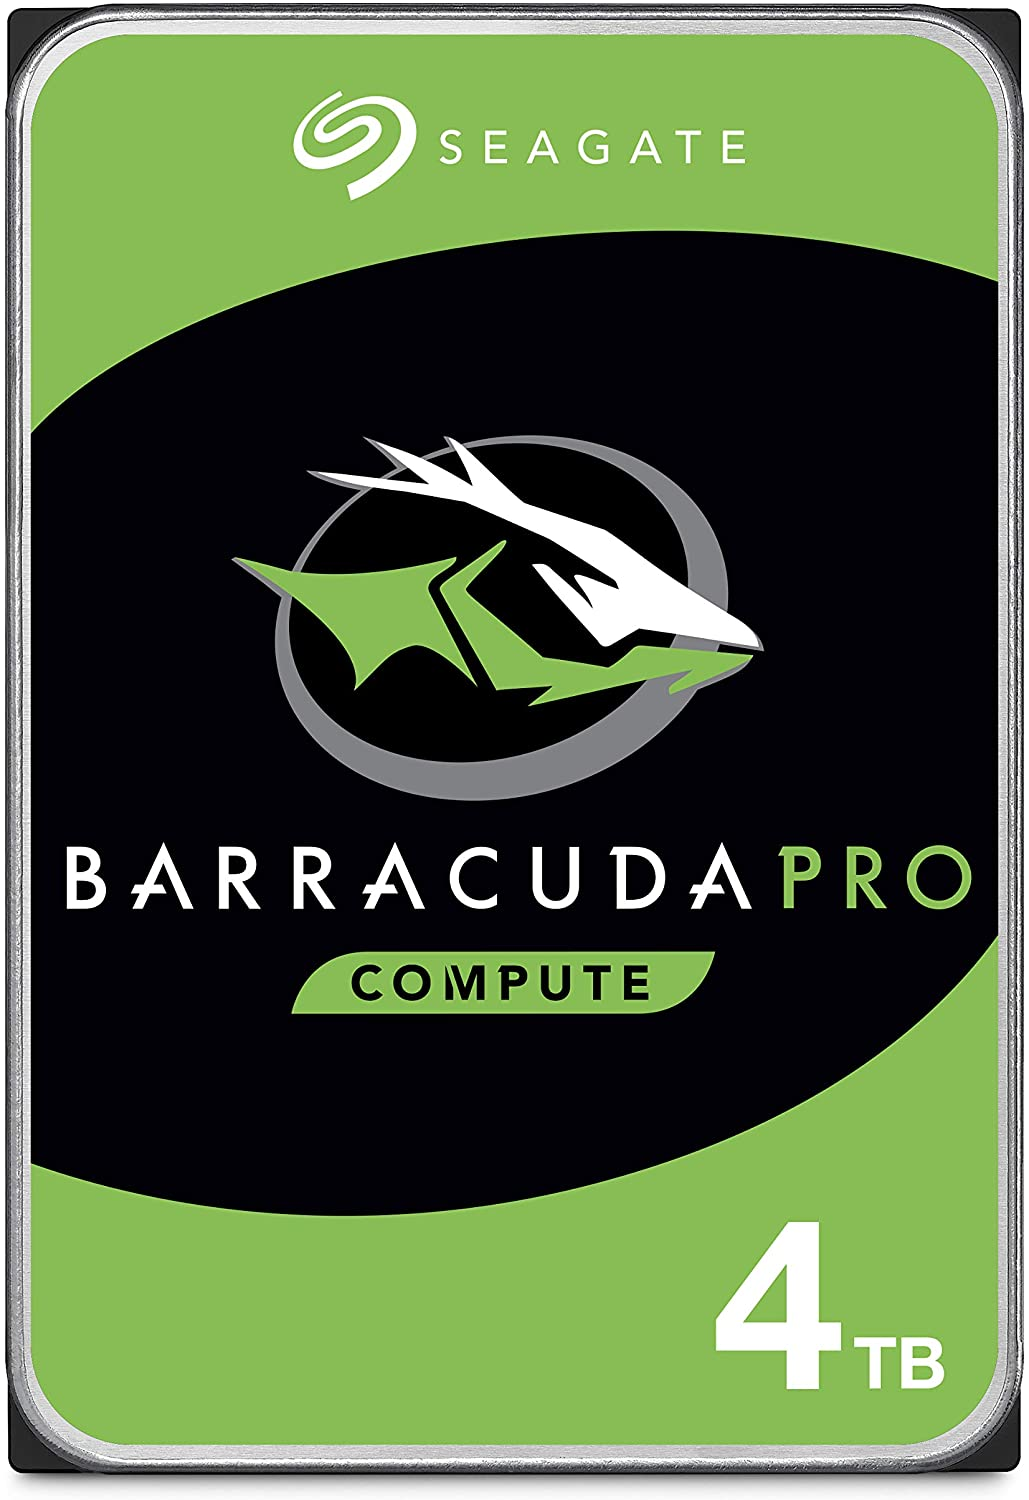 Seagate BarraCuda Pro 4TB Internal Hard Drive Performance HDD – 3.5 Inch SATA 6 Gb/s 7200 RPM 128MB Cache for Computer Desktop PC, Data Recovery (ST4000DM006)